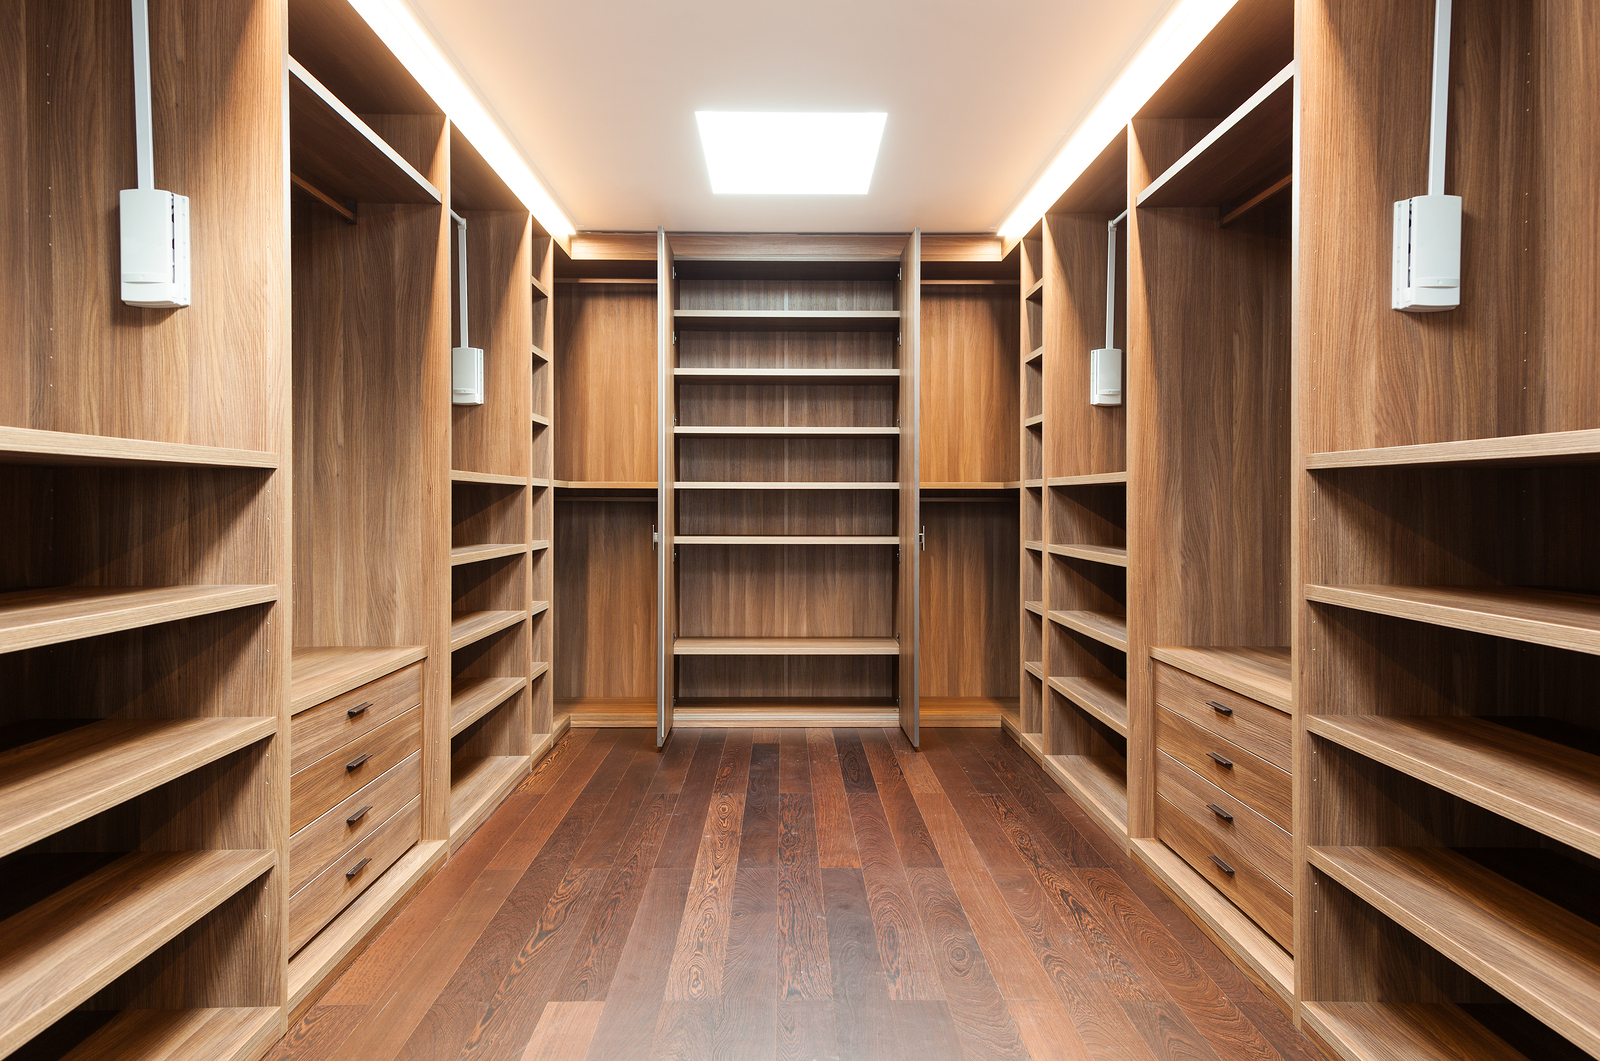 Superb 6 Things Not To Do When Designing A Custom Closet | Closet Engineers |  Custom Organization Designs In NJ, NY U0026 CT